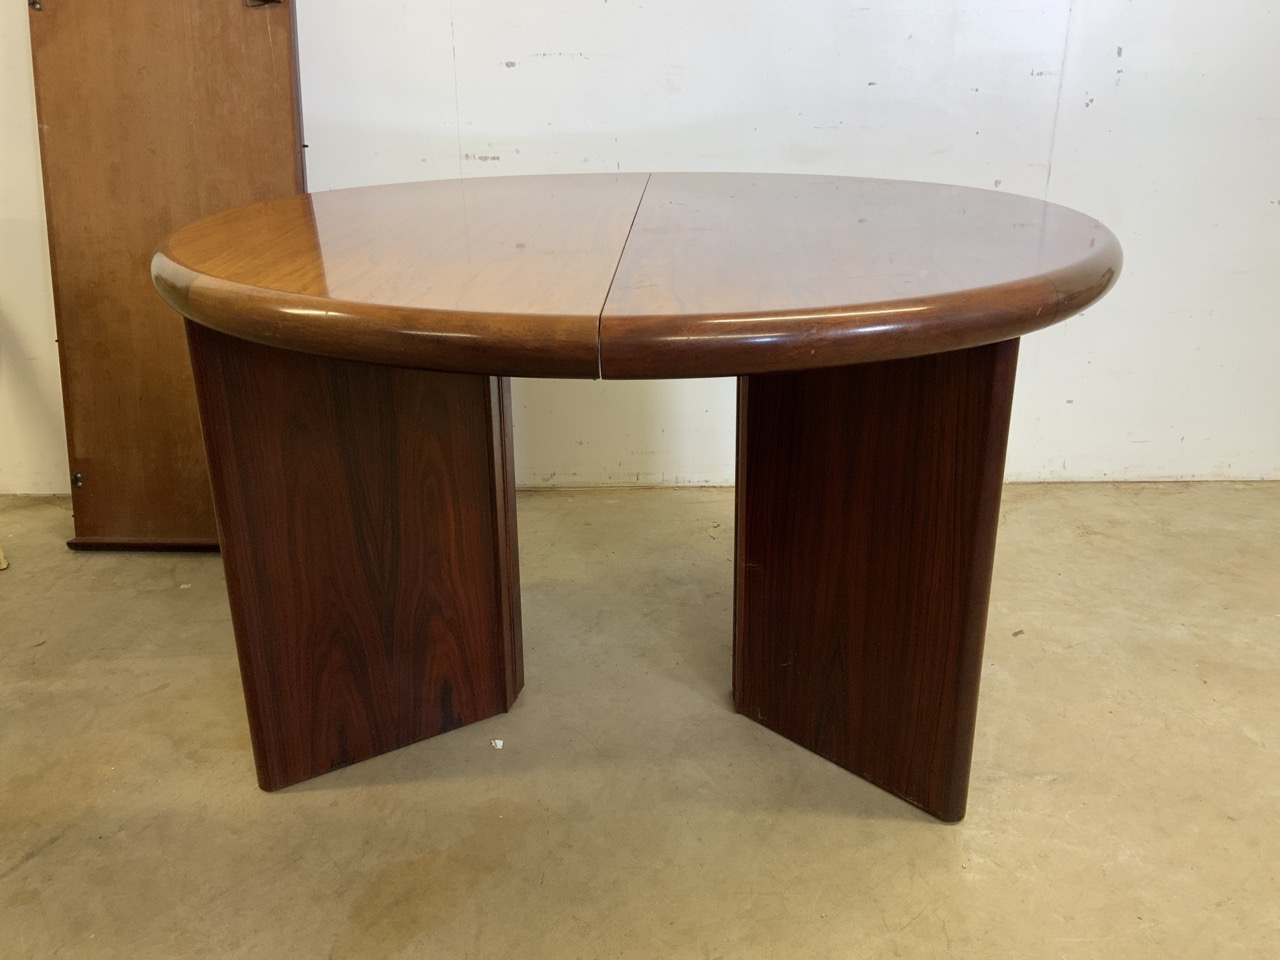 A mid century rosewood Scandinavian extendable table by Svegards Markaryd W:170cm x D:120cm x H:73cm - Image 7 of 8